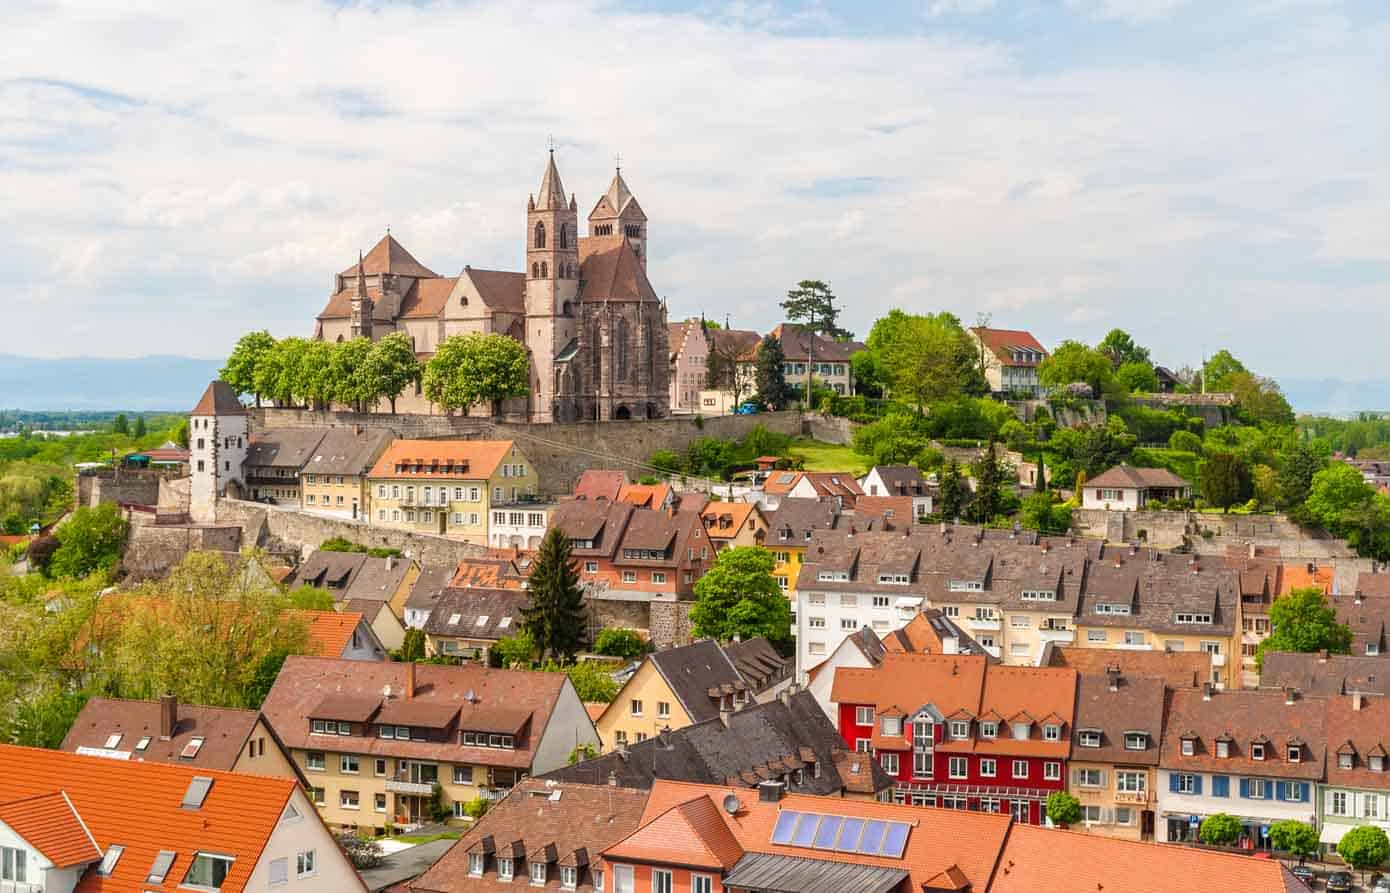 View of old buildings and church in Breisach, Germany.